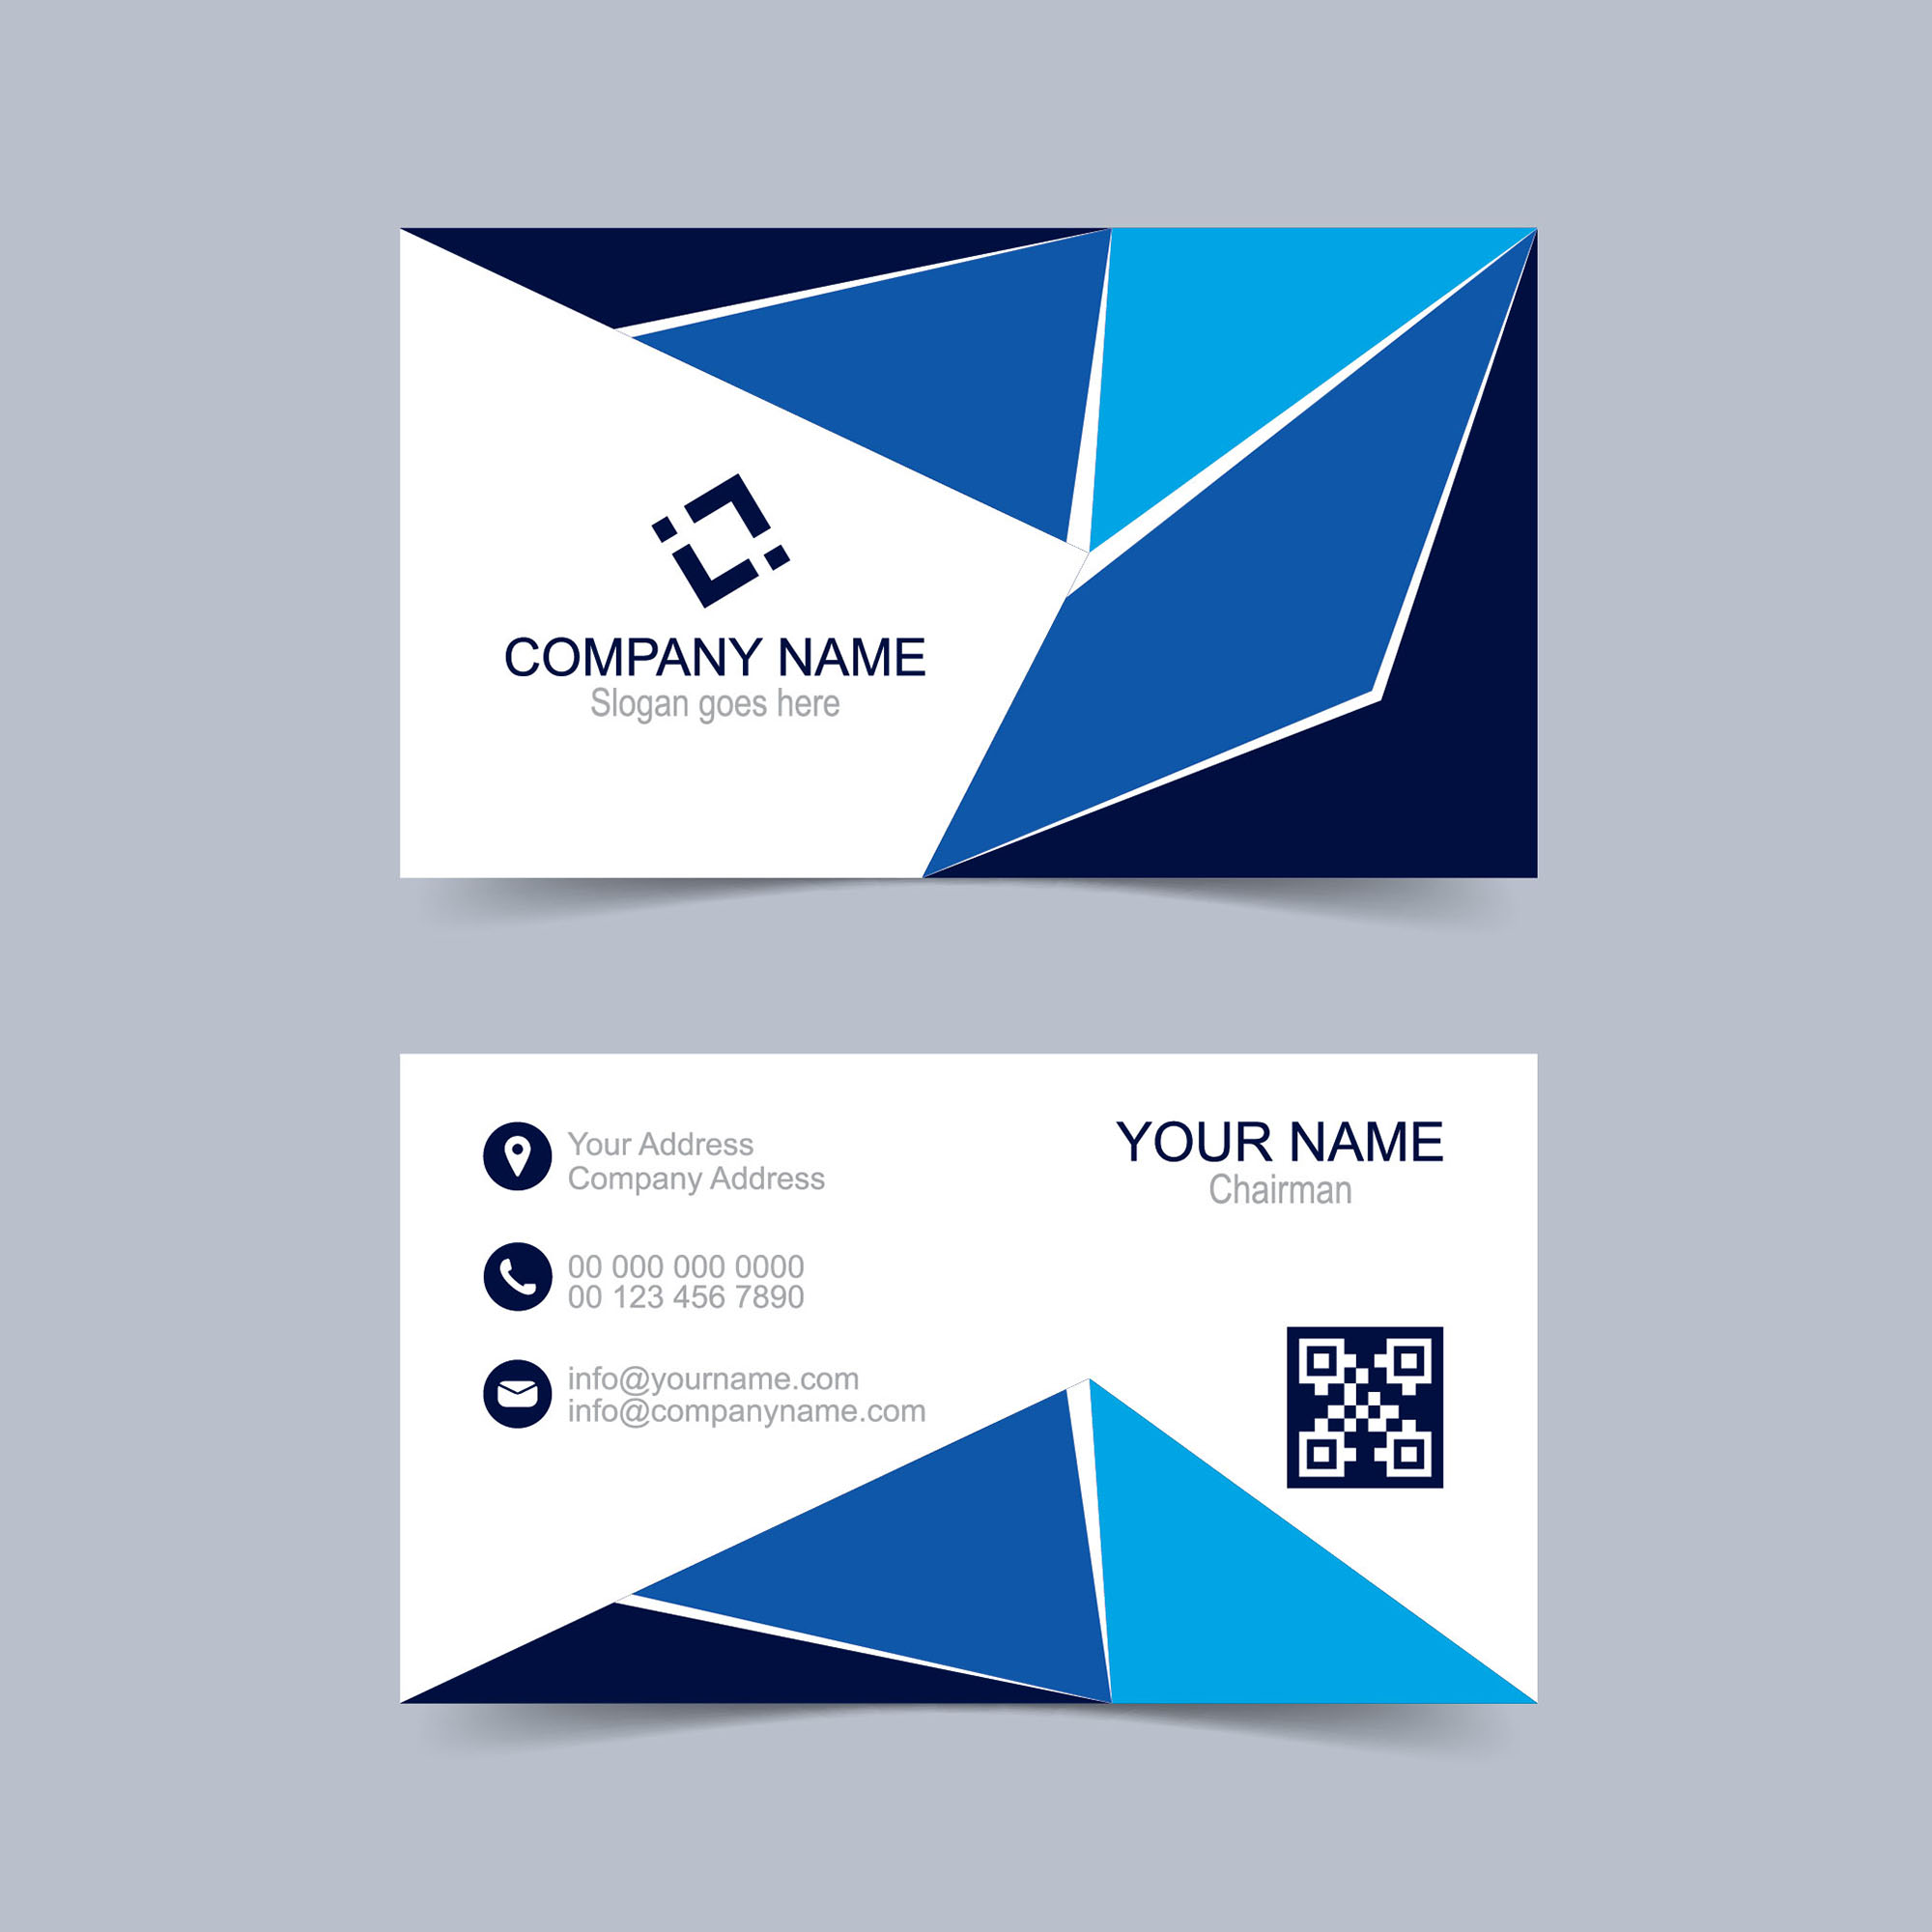 Creative business card design free download wisxi business card business cards business card design business card template design templates fbccfo Gallery